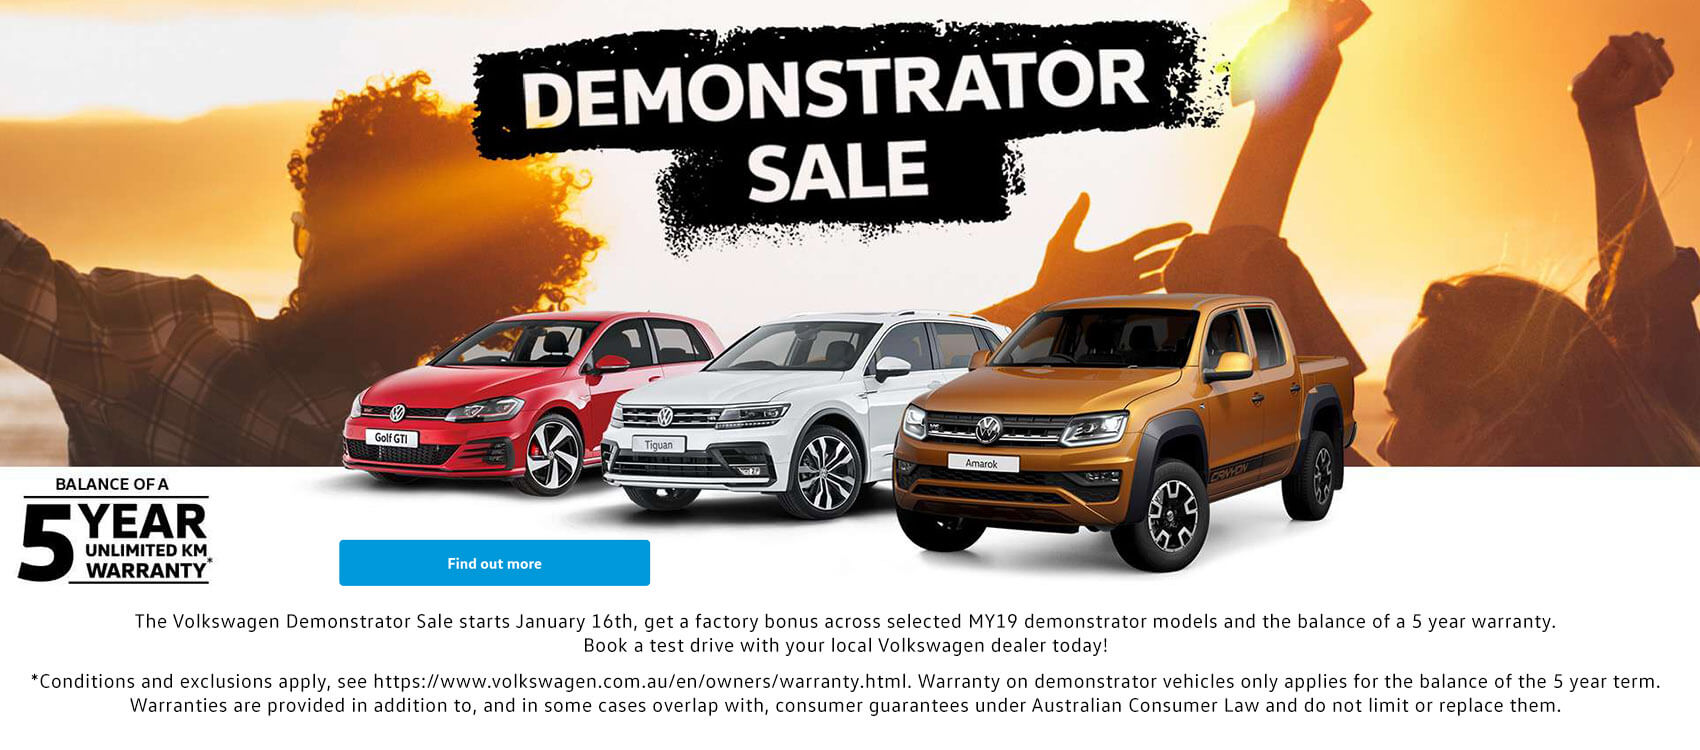 The Volkswagen Demonstrator Sale starts January 16th, get a factory bonus across selected MY19 demonstrator models and the balance of a 5 year warranty. Book a test drive with Gold Coast Volkswagen Commercial Centre